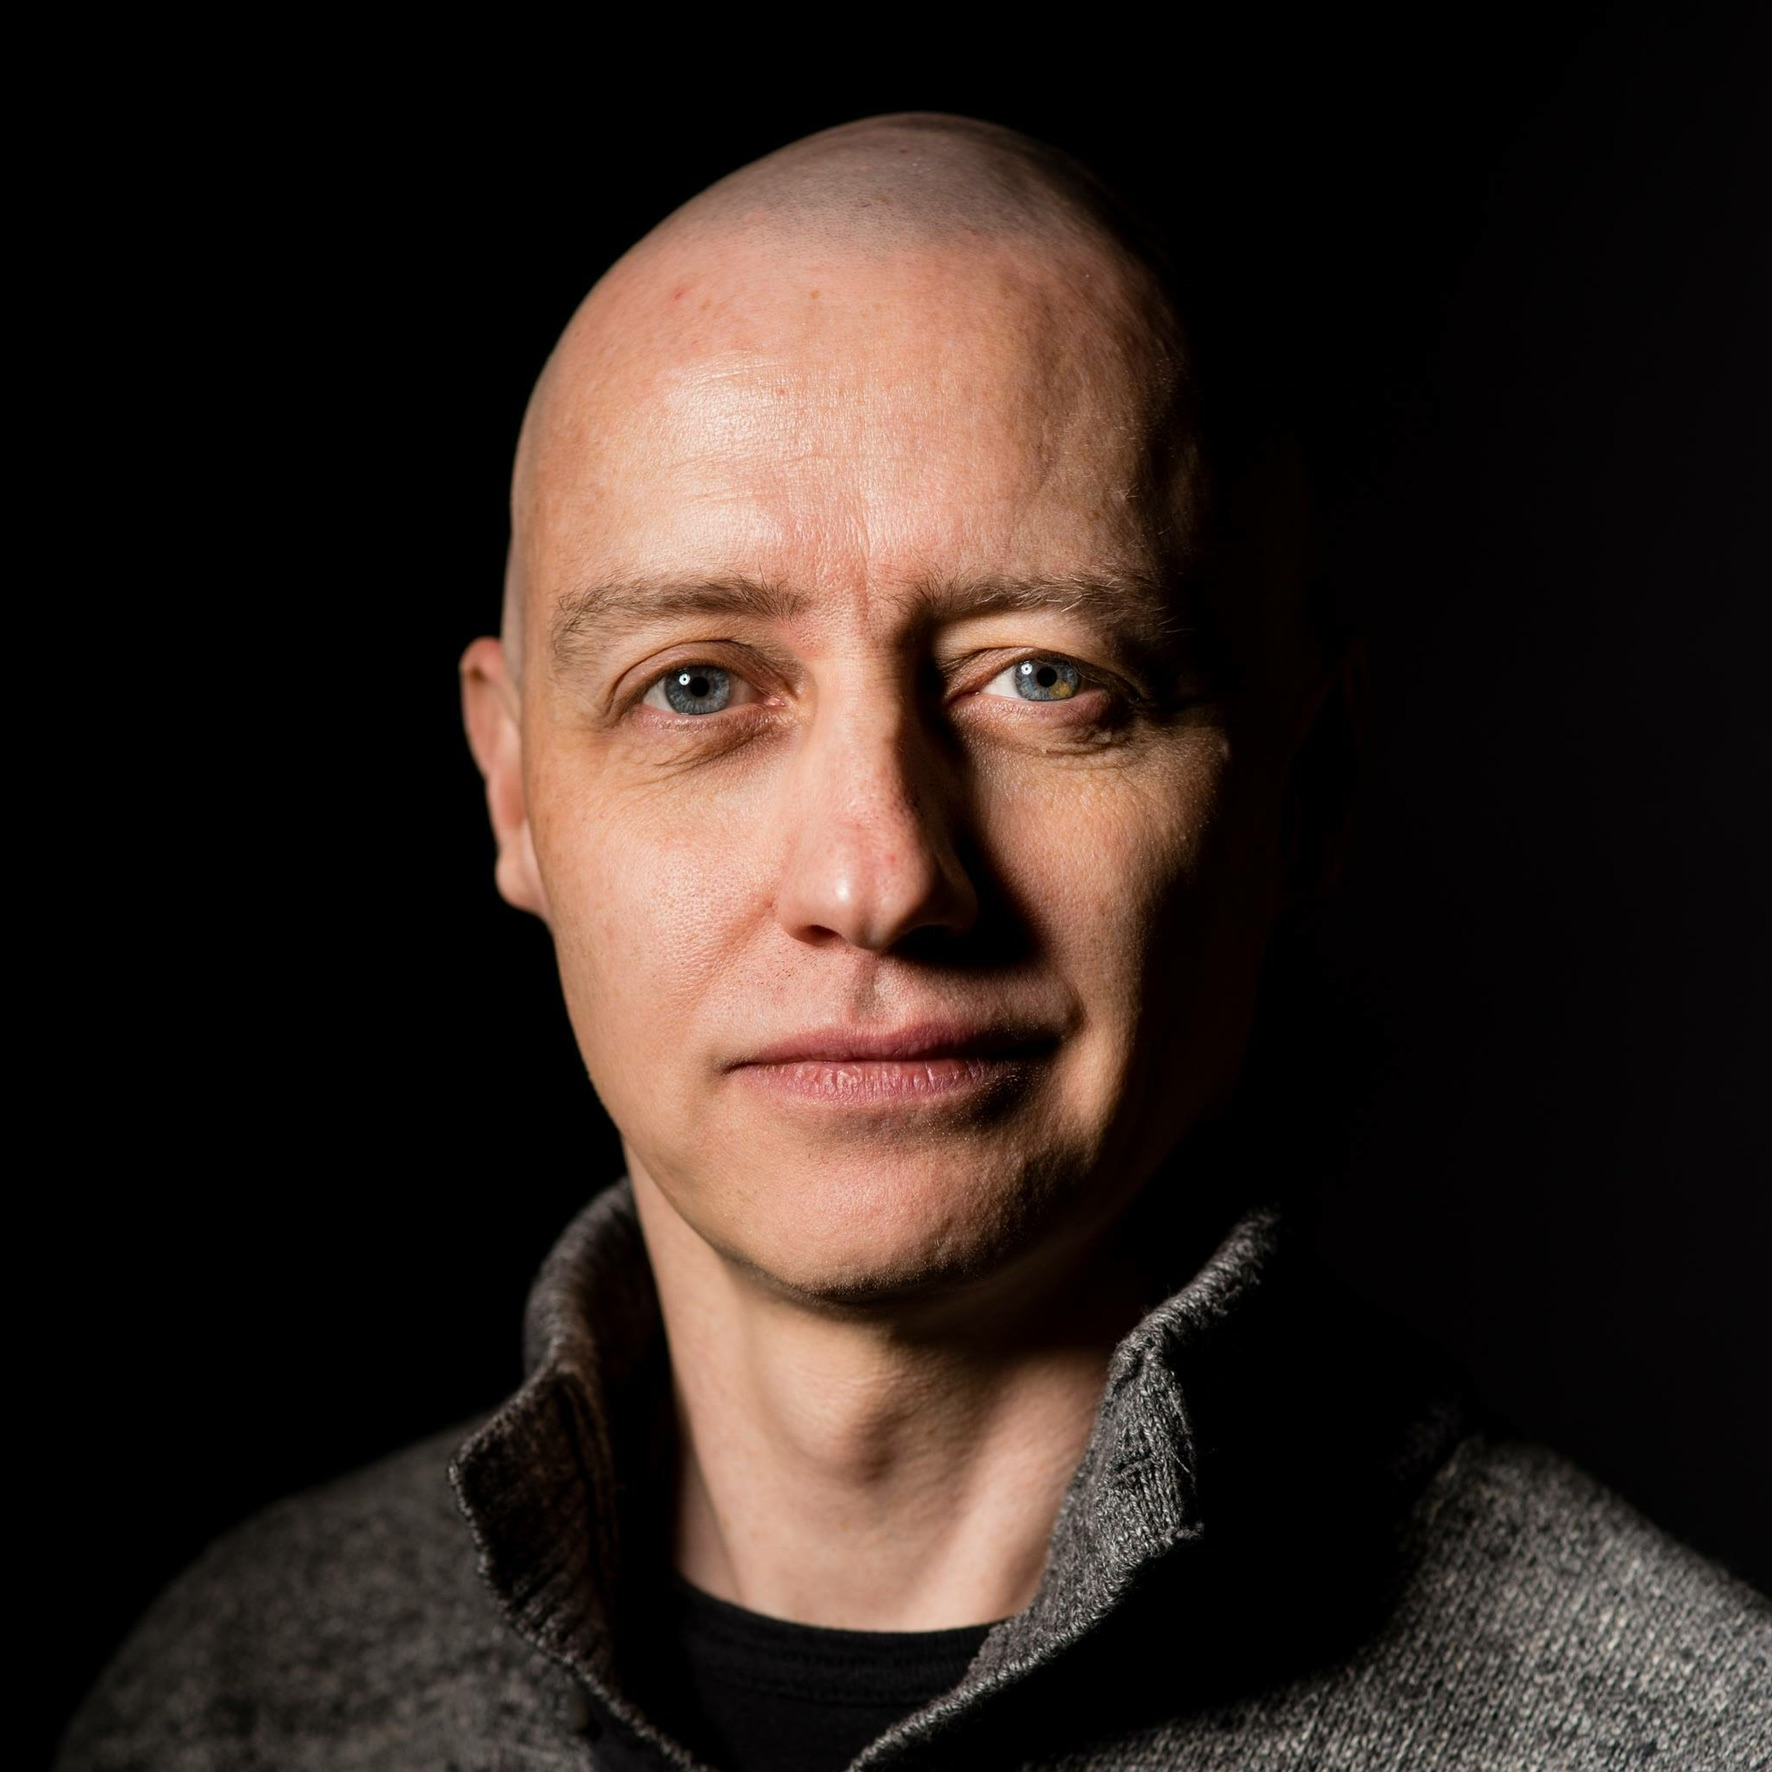 Alasdair Allan    (Babilim Light Industries, UK)    @aallan   Alasdair is a scientist, author, hacker, and journalist. In the past he has mesh networked the Moscone Center, caused a U.S. Senate hearing, and contributed to the detection of what was—at the time—the most distant object yet discovered.